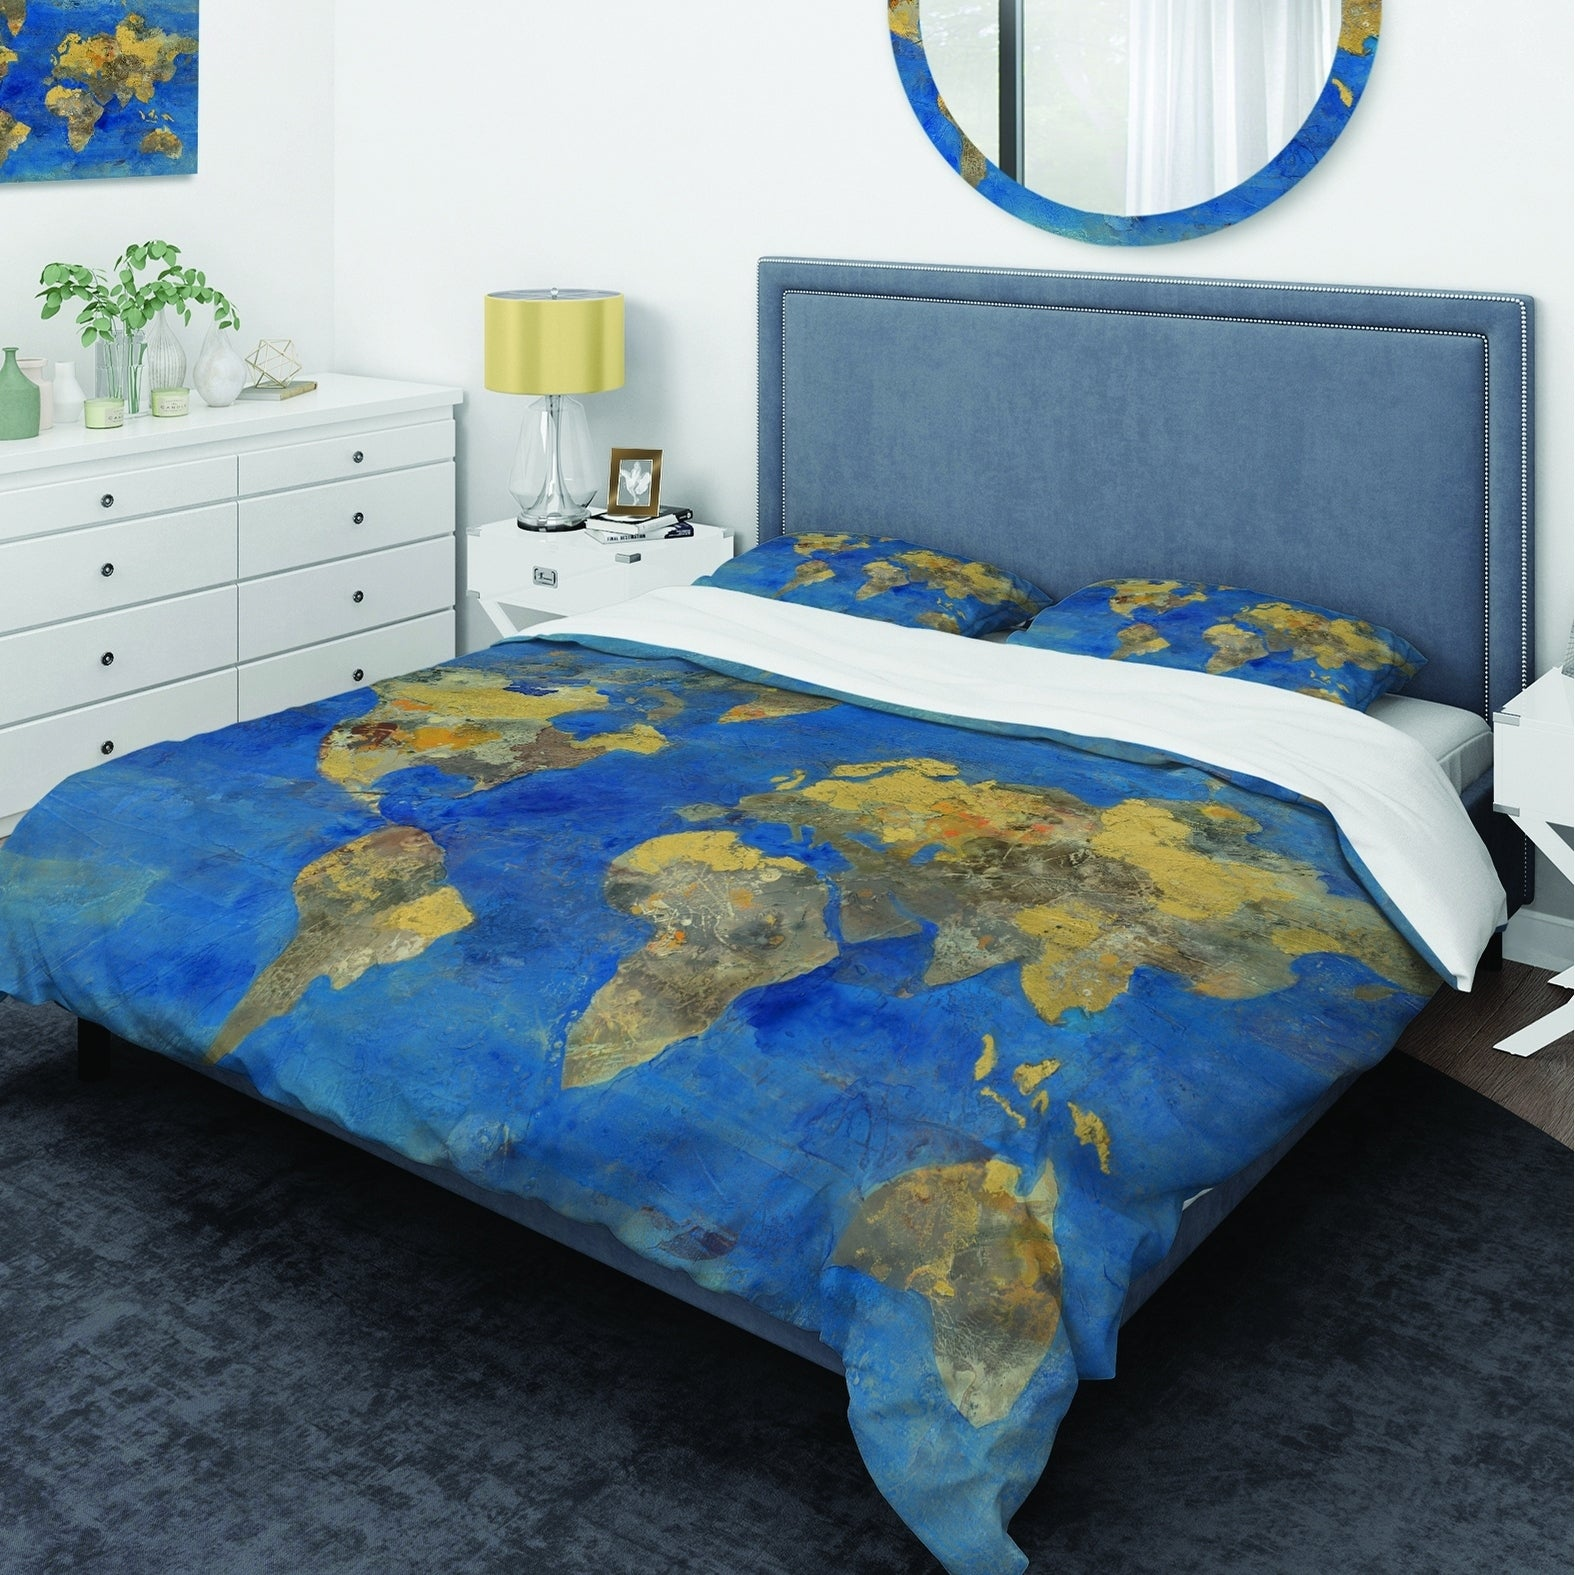 Designart \'Golden Glam World Map\' Glam Bedding Set - Duvet Cover & Shams